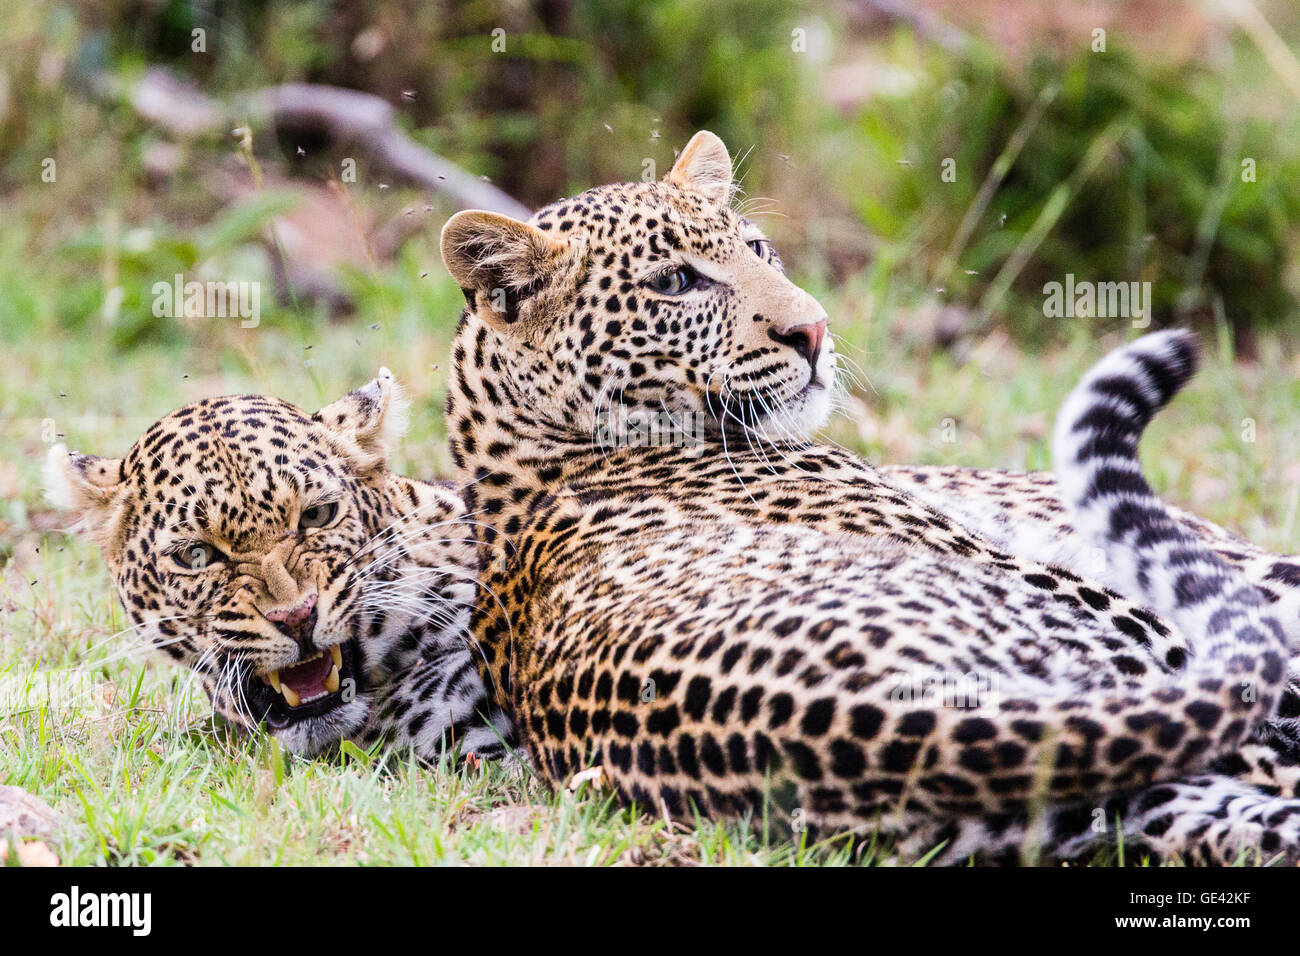 Masai Mara, Kenya. African leopard (Panthera pardus pardus) snarling rests with another leopard near a recent kill. - Stock Image